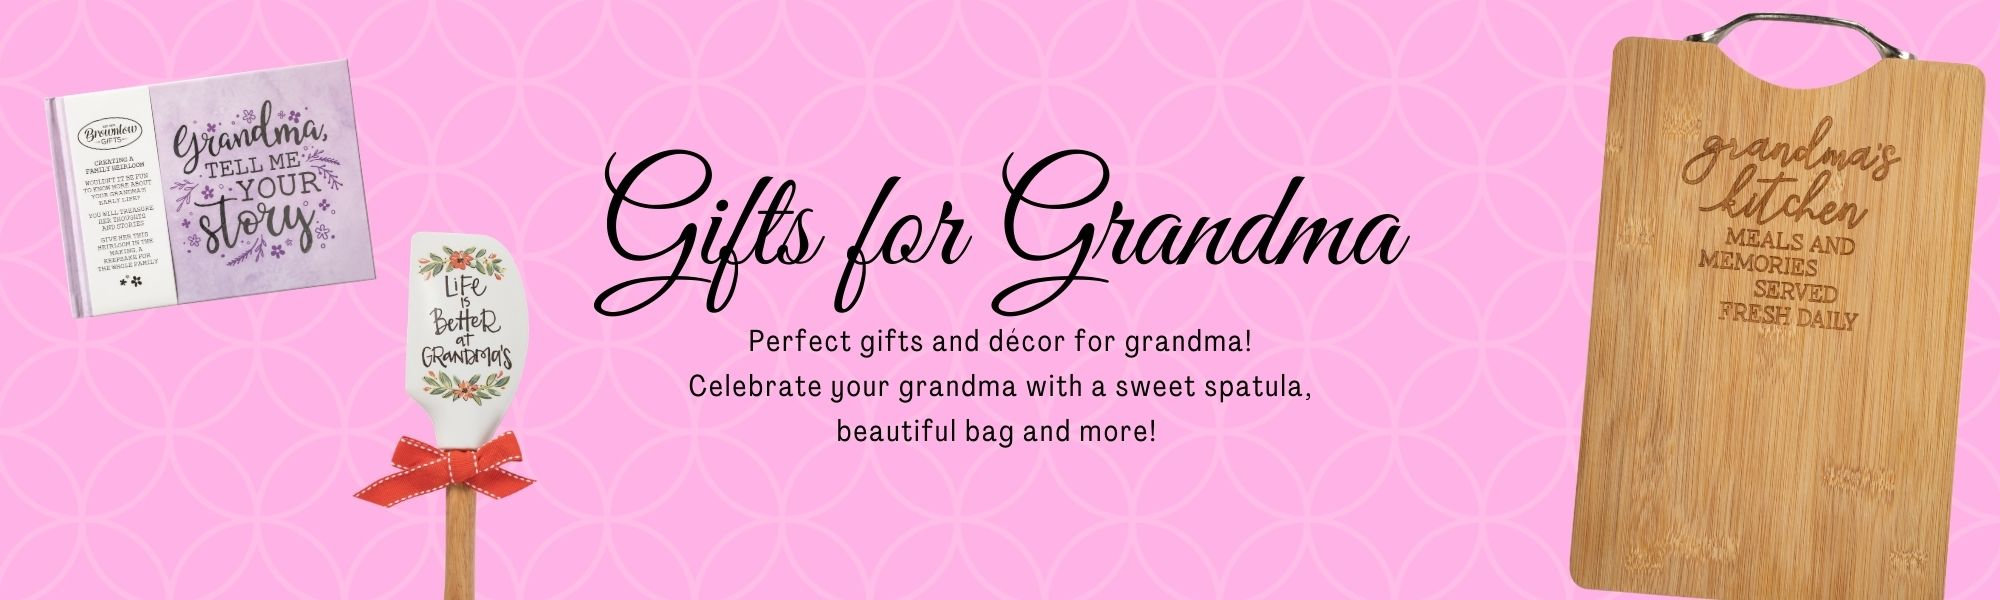 The perfect gift and décor for grandma!